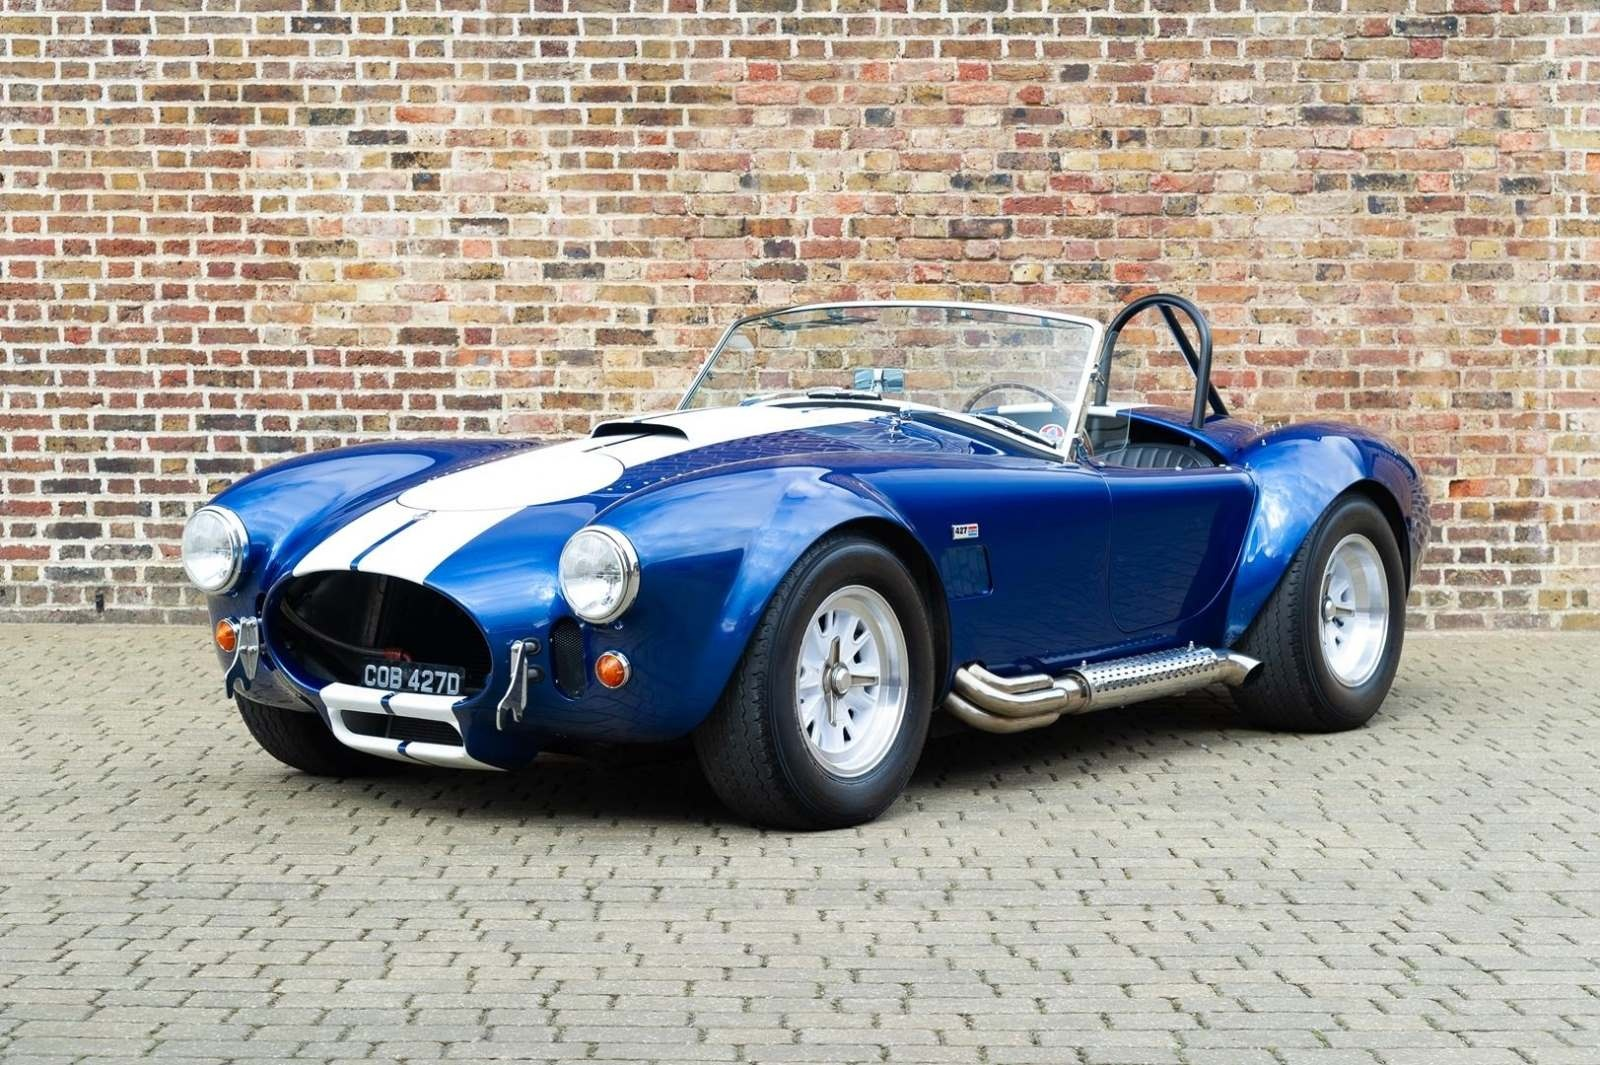 AC Cobra 427 Roadster for sale - Vehicle Sales - DK Engineering